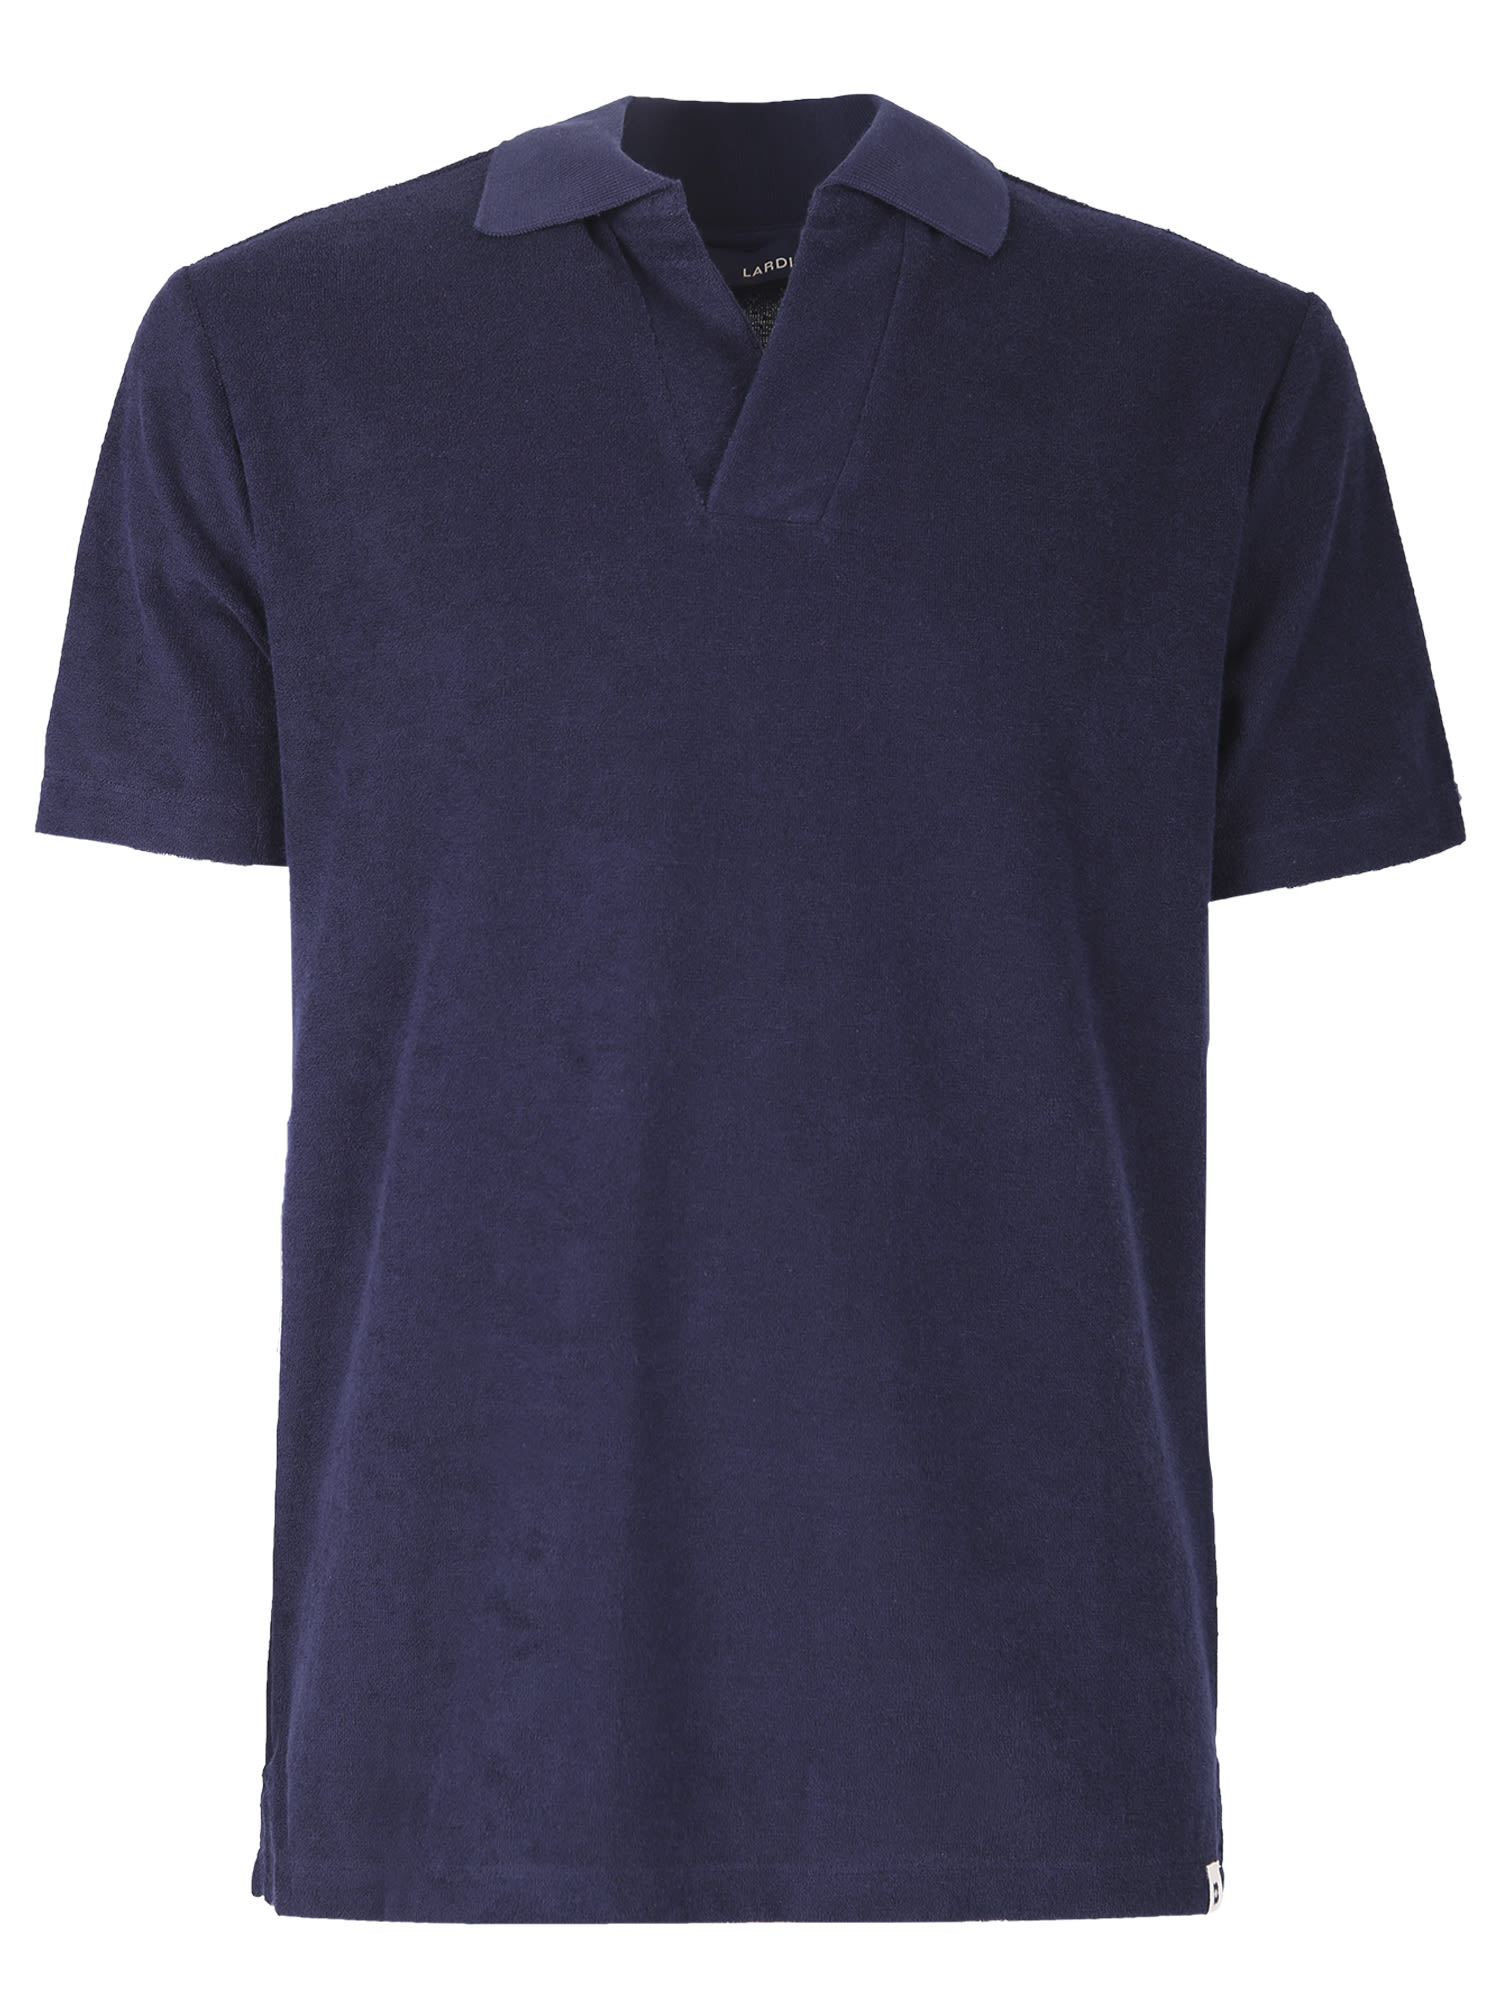 Lardini Relaxed Fit Polo